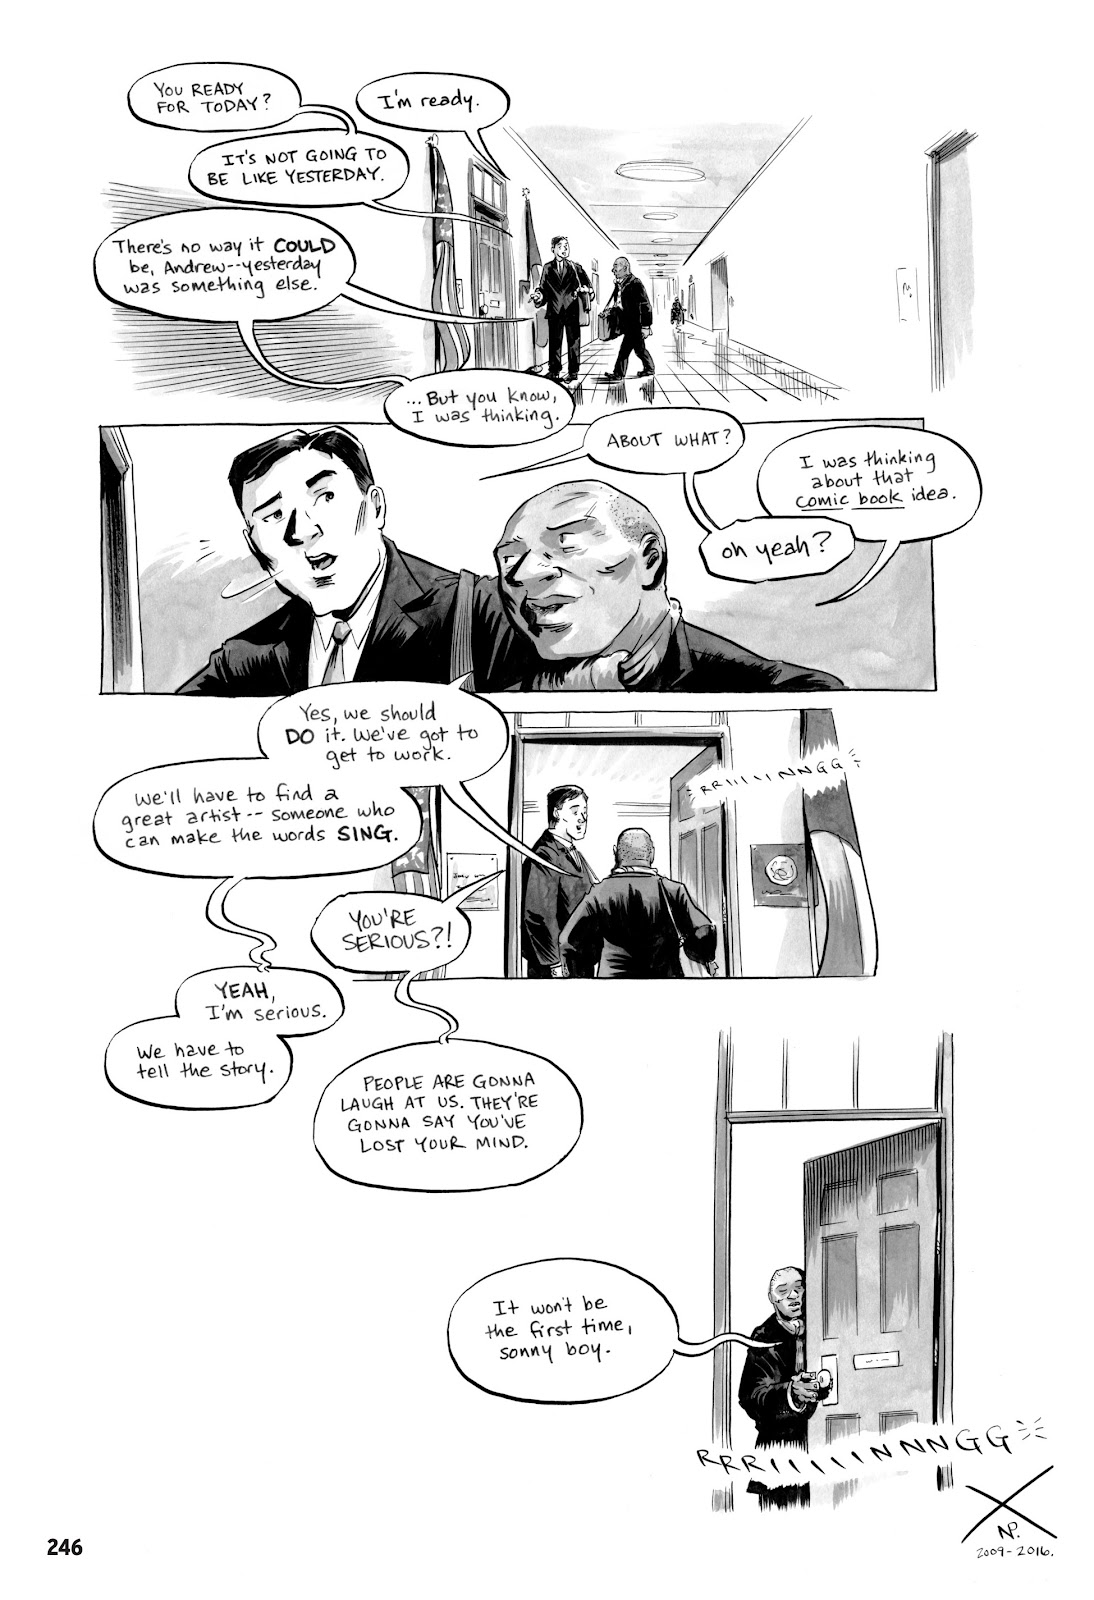 March 3 Page 240